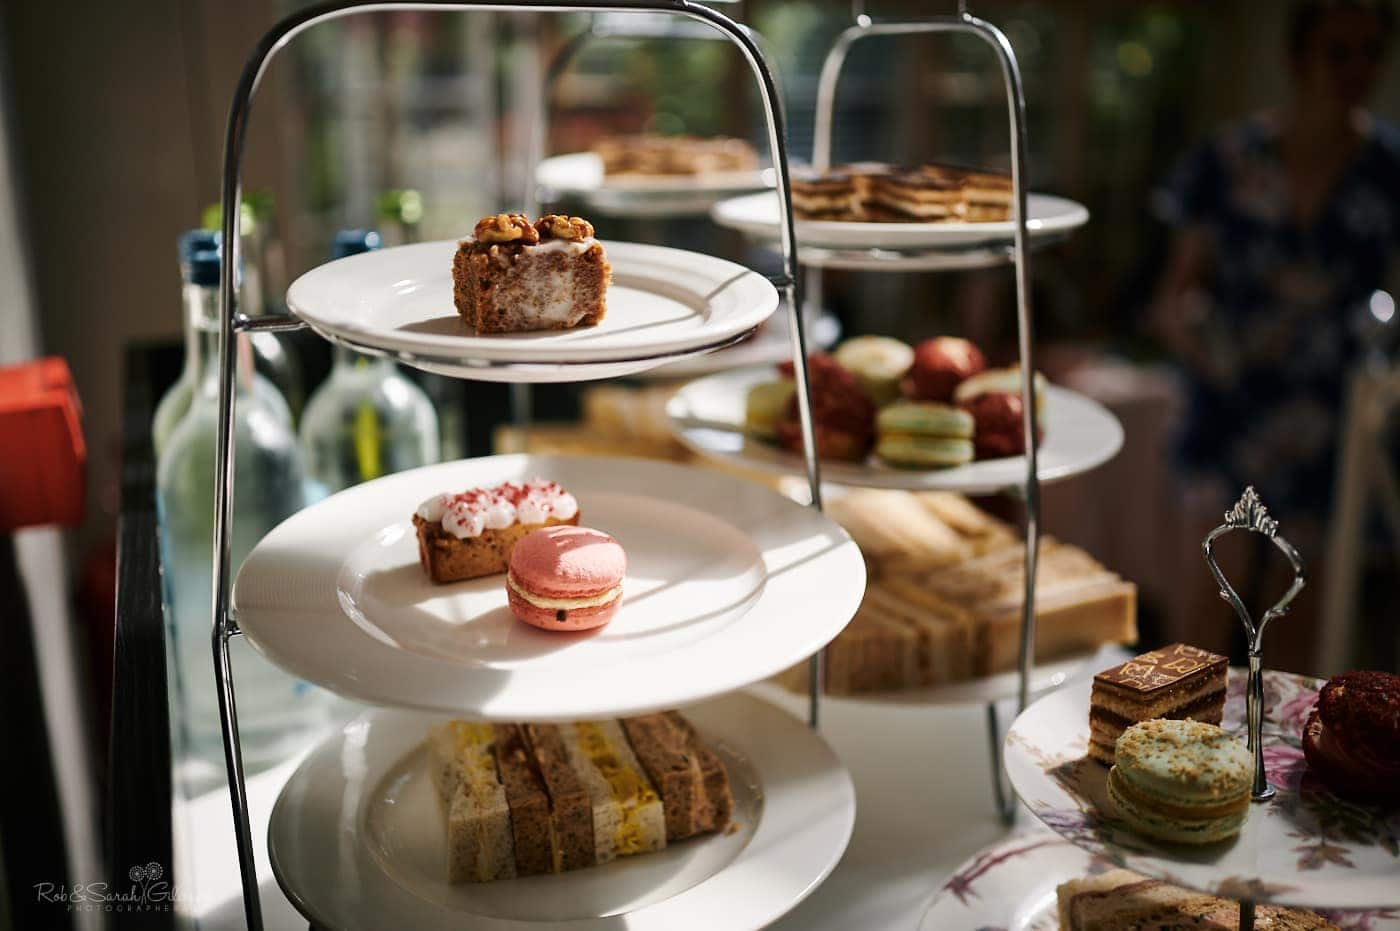 Afternoon tea cakes at Mallory Court